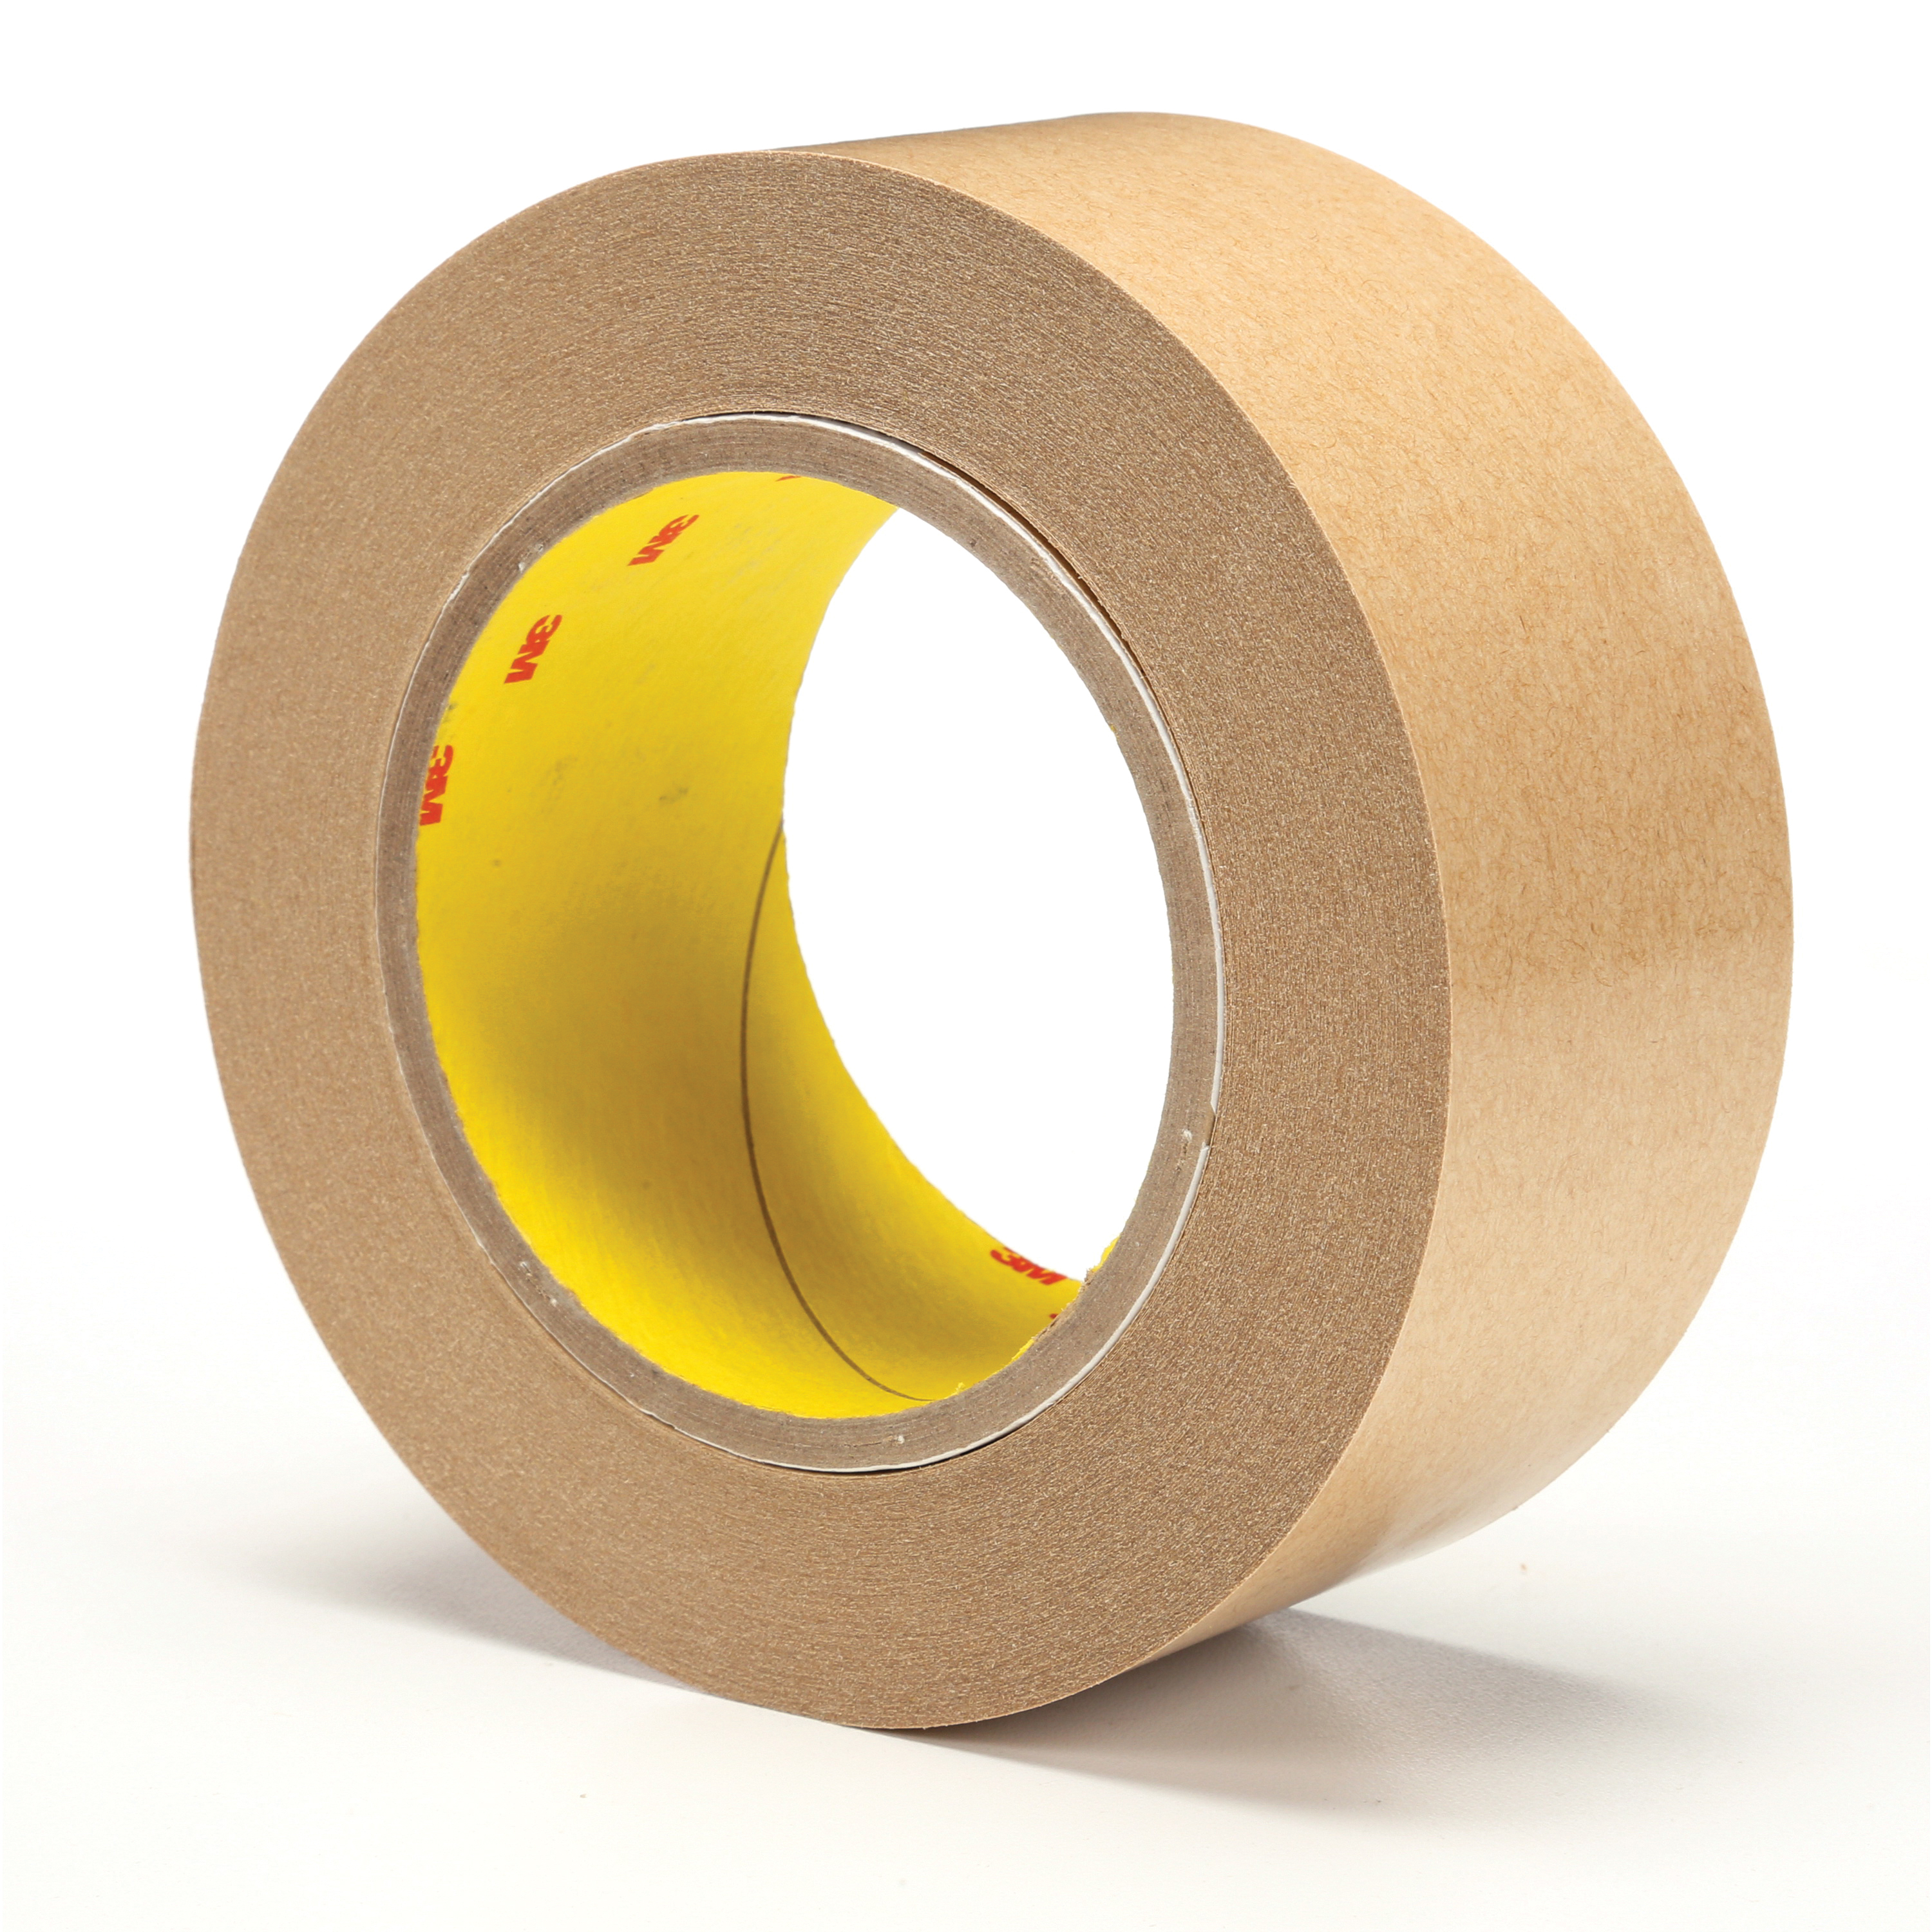 3M™ 021200-04299 Fibered General Purpose Adhesive Transfer Tape, 60 yd L x 2 in W, 2 mil THK, 2 mil 400 Acrylic Adhesive, Clear